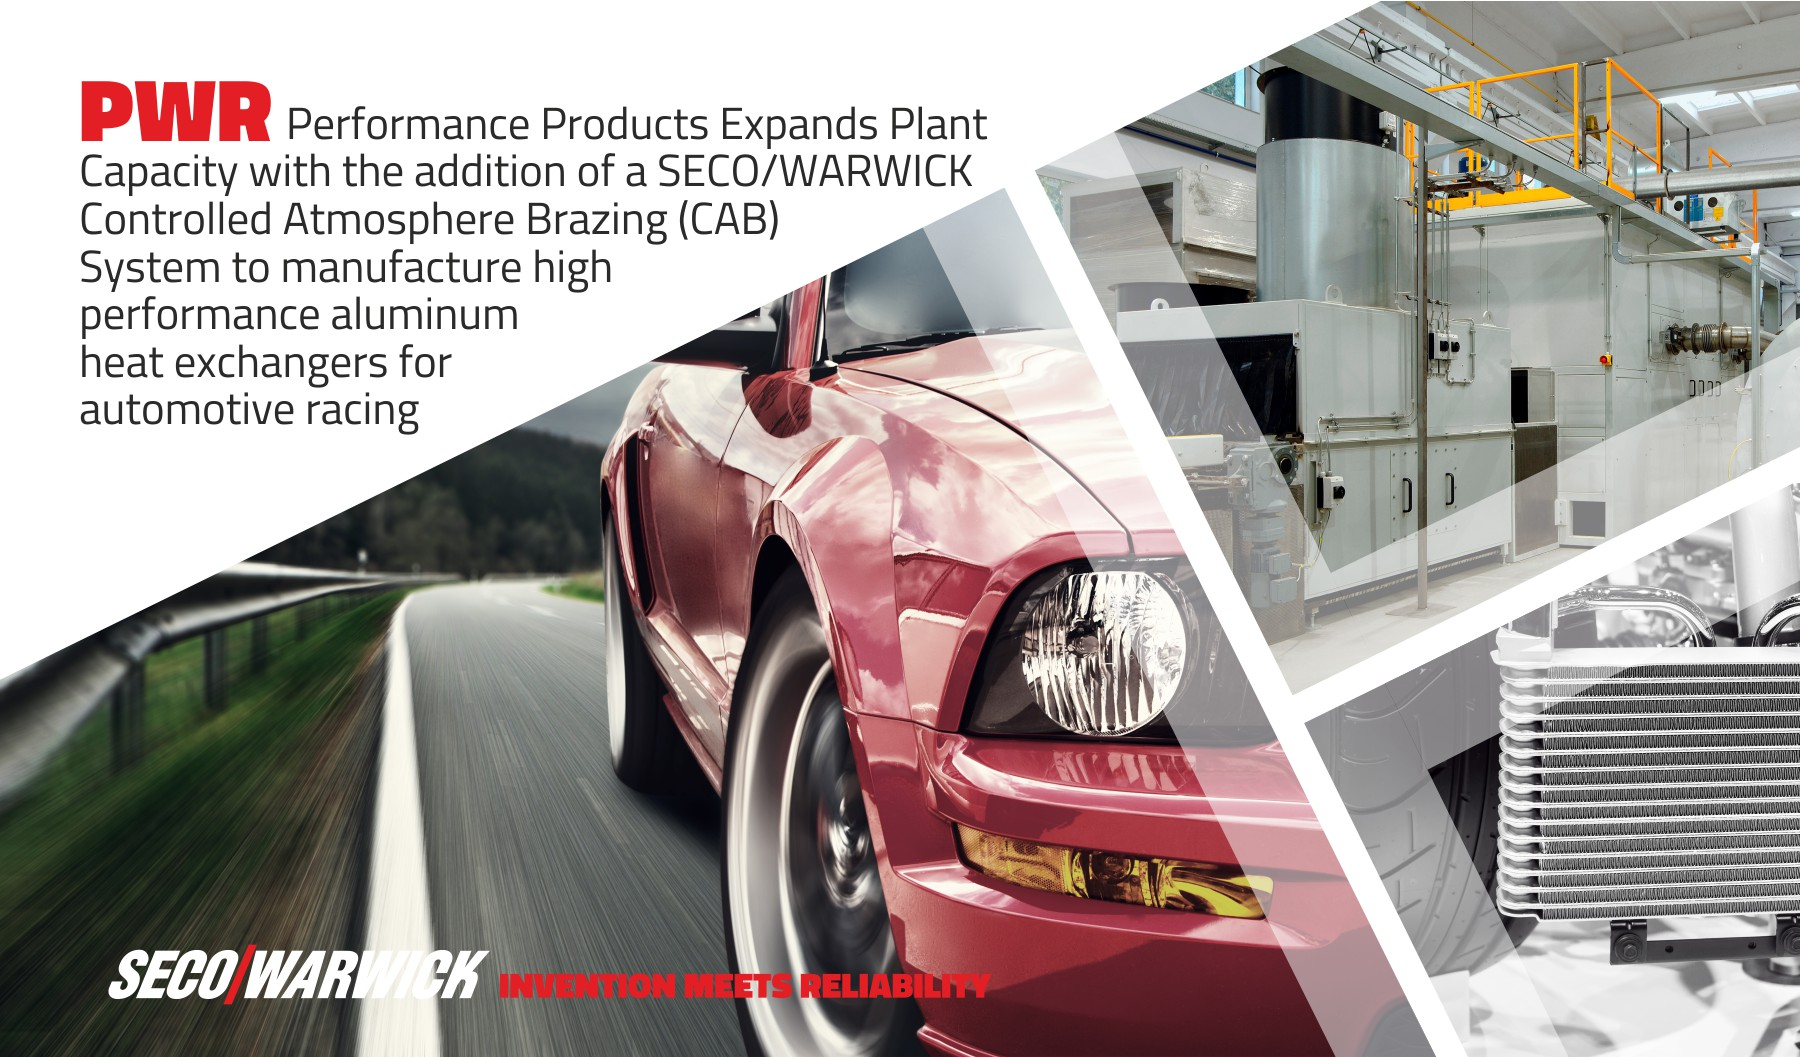 PWR Performance Products Expands Plant Capacity with the addition of a SECO/WARWICK Controlled Atmosphere Brazing (CAB) System to manufacture high performance aluminum heat exchangers for automotive racing